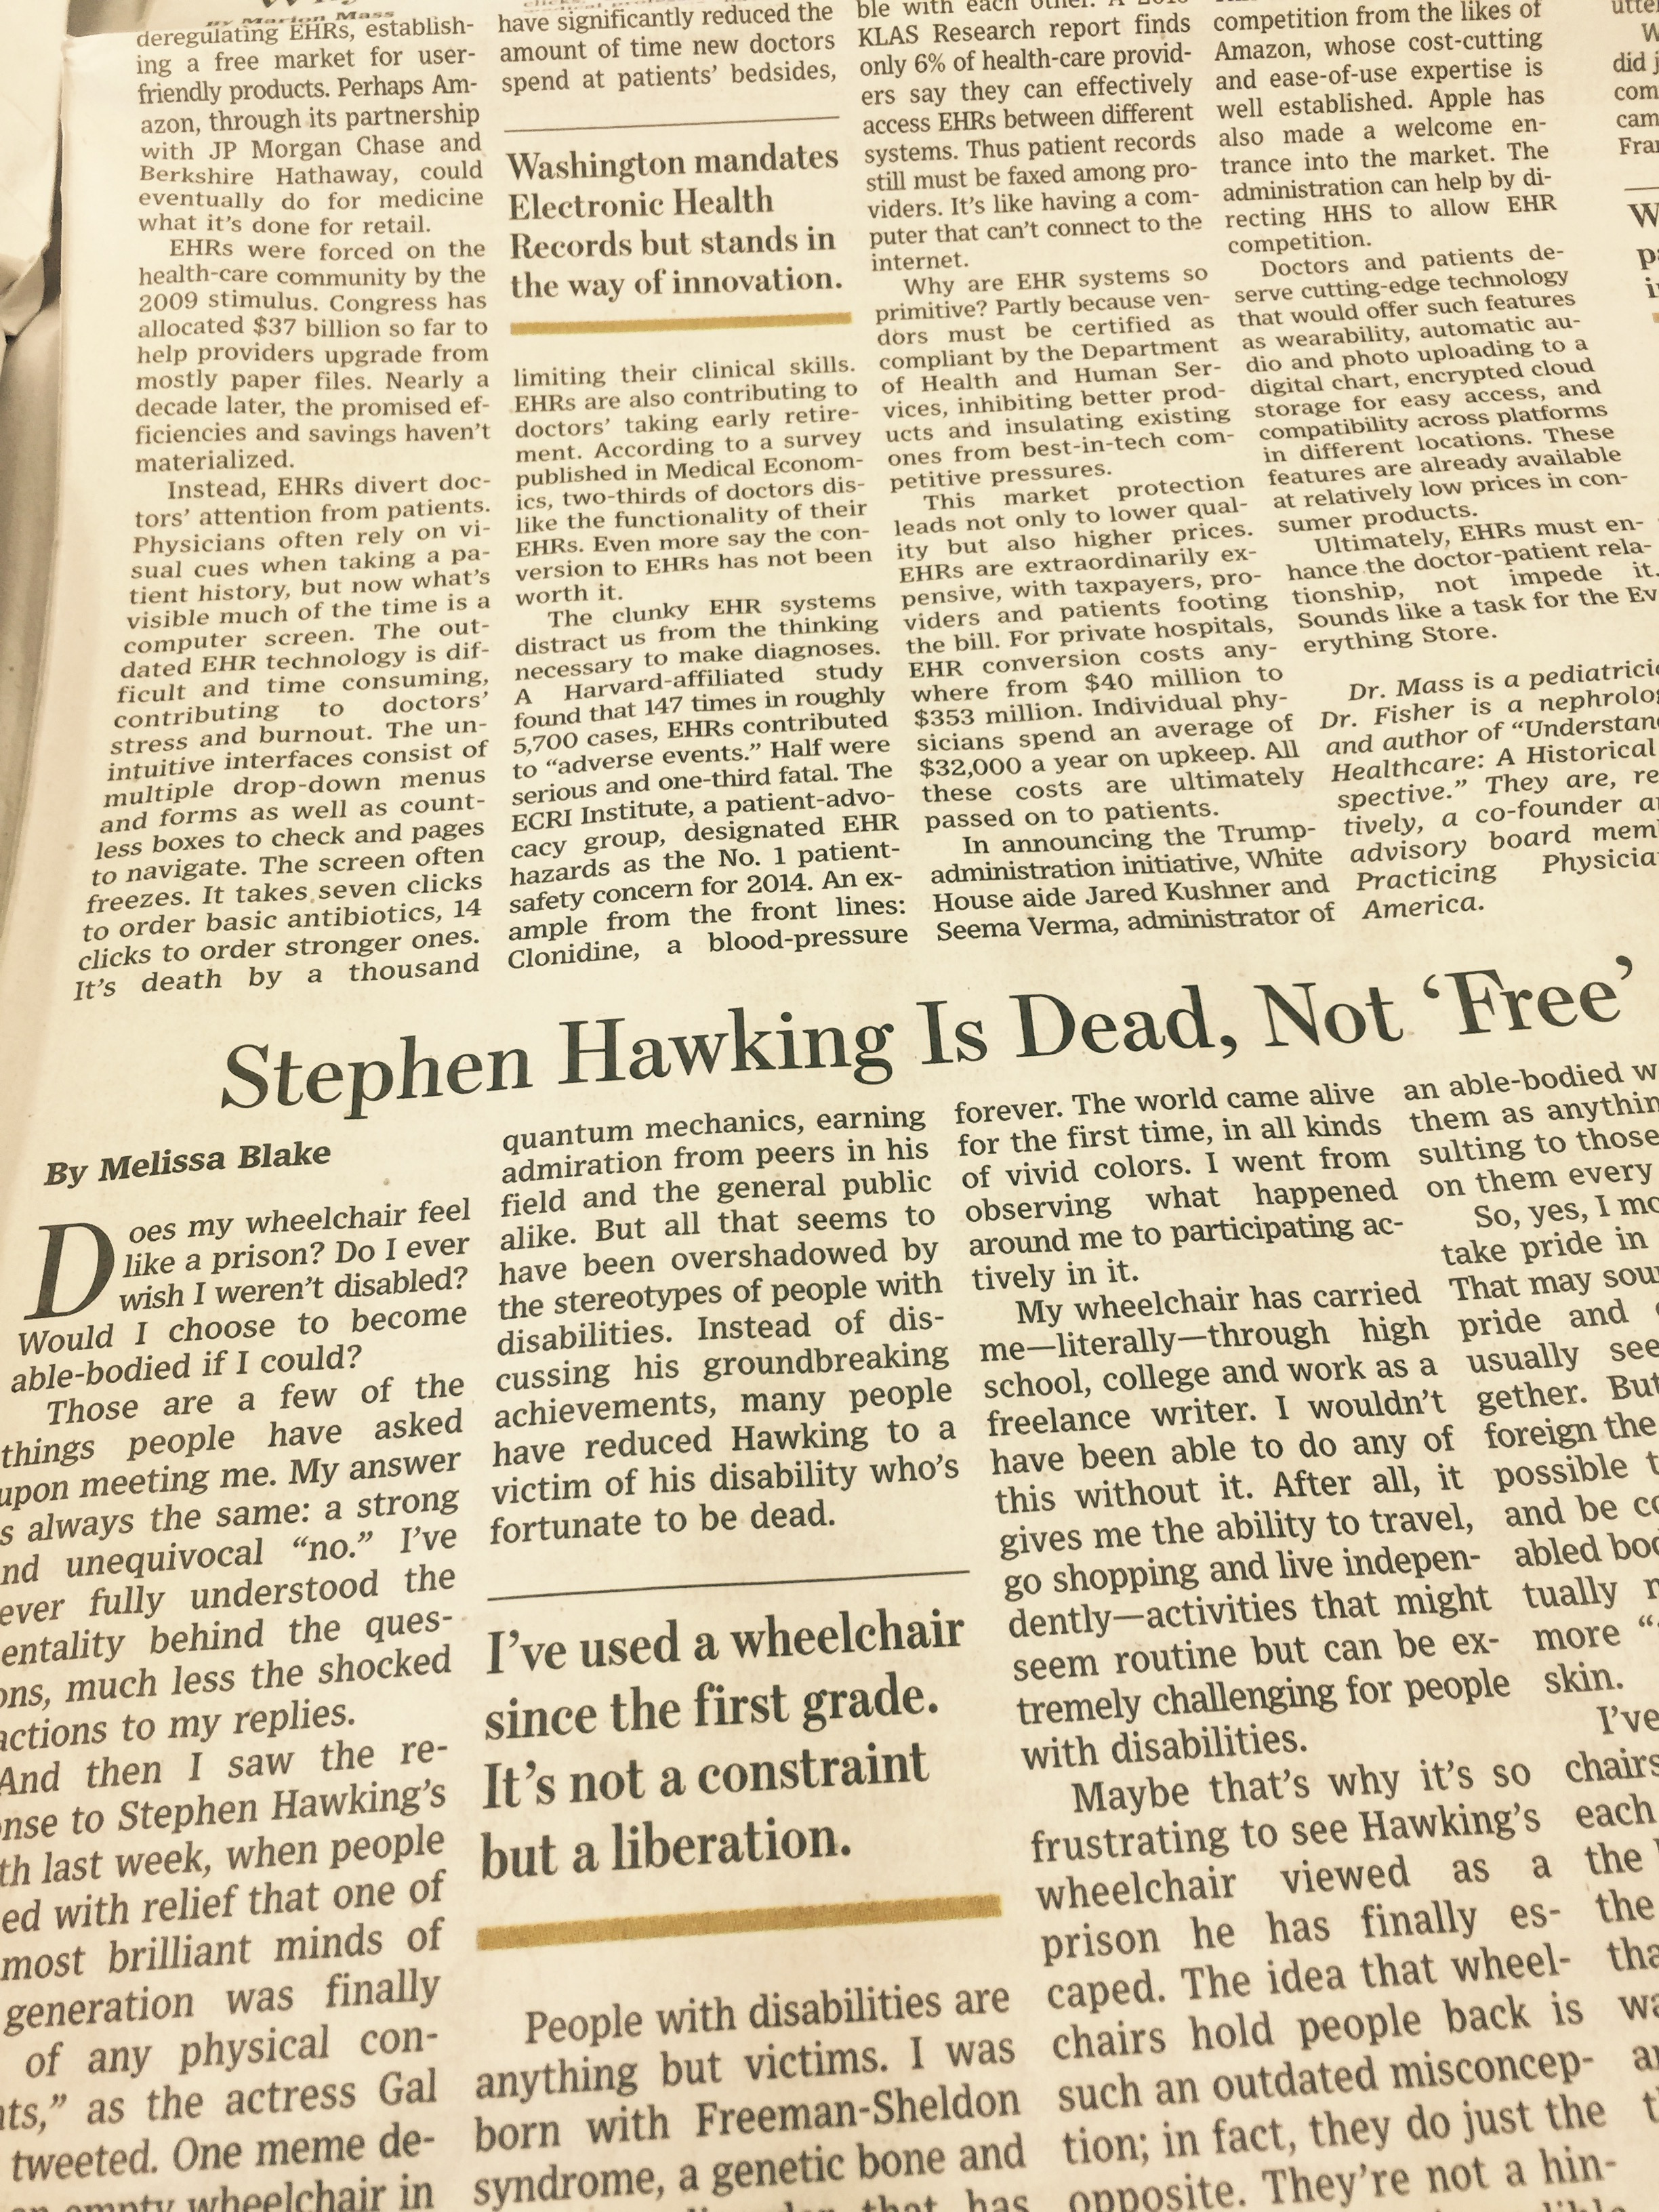 My Essay In The Wall Street Journal: